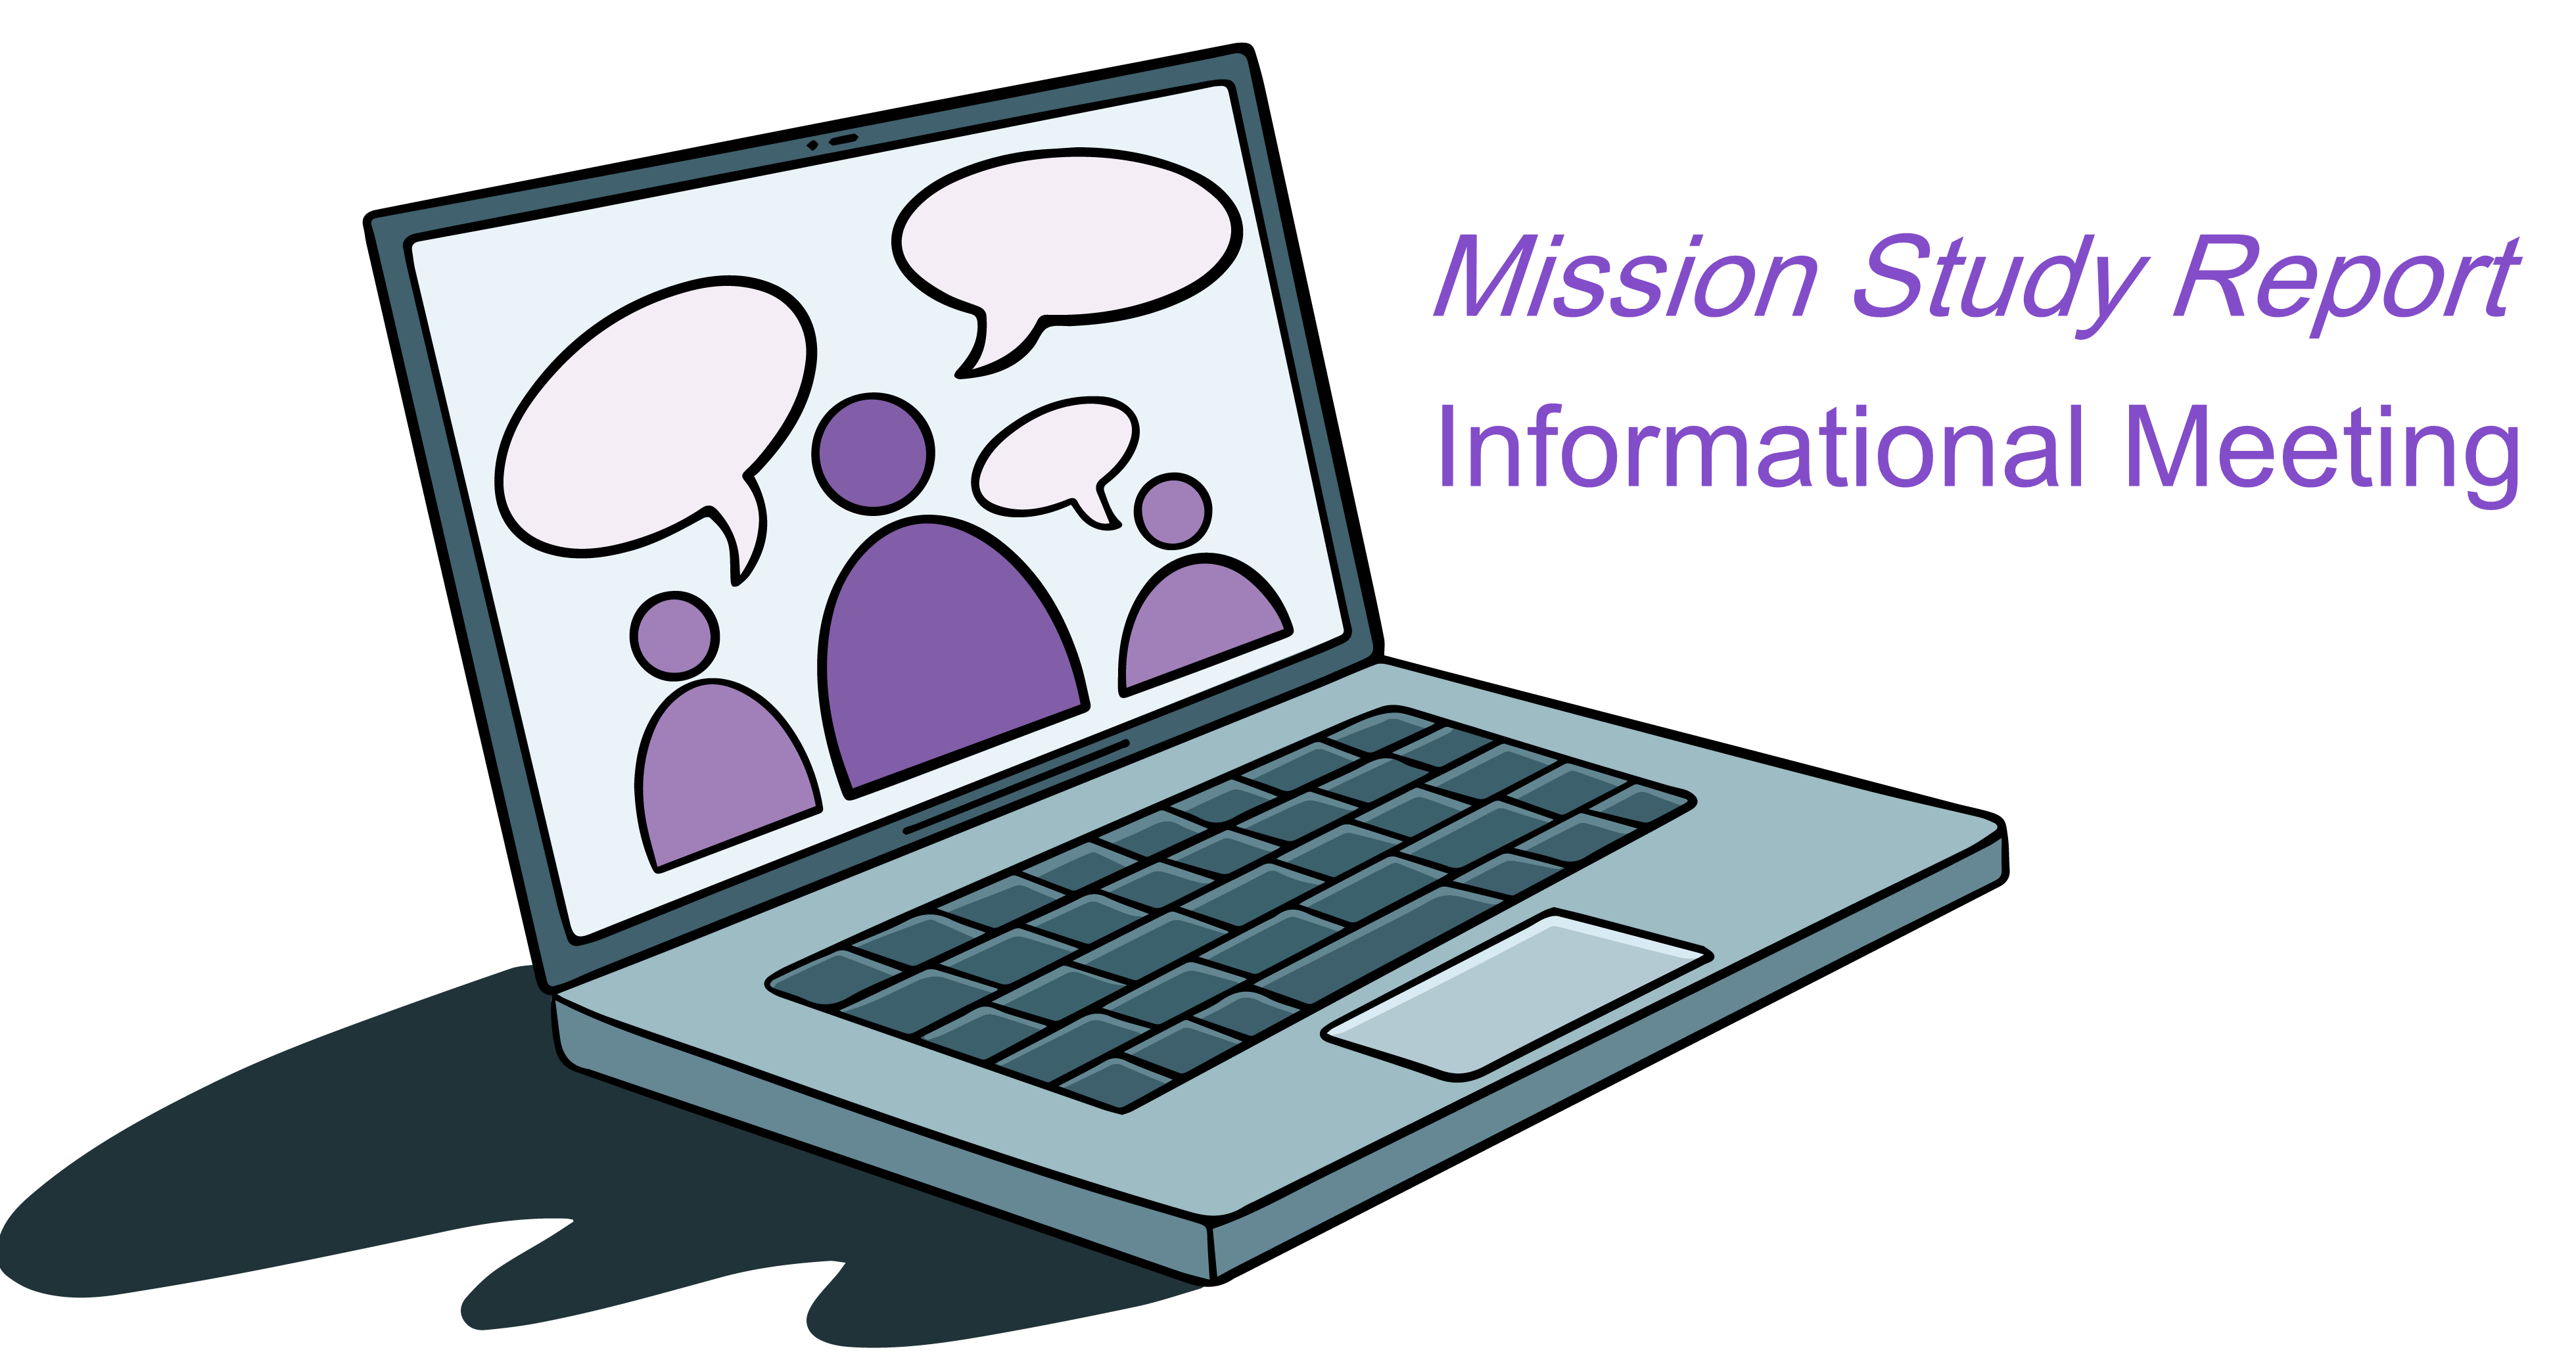 Mission Study Report Info Meeting clipart image